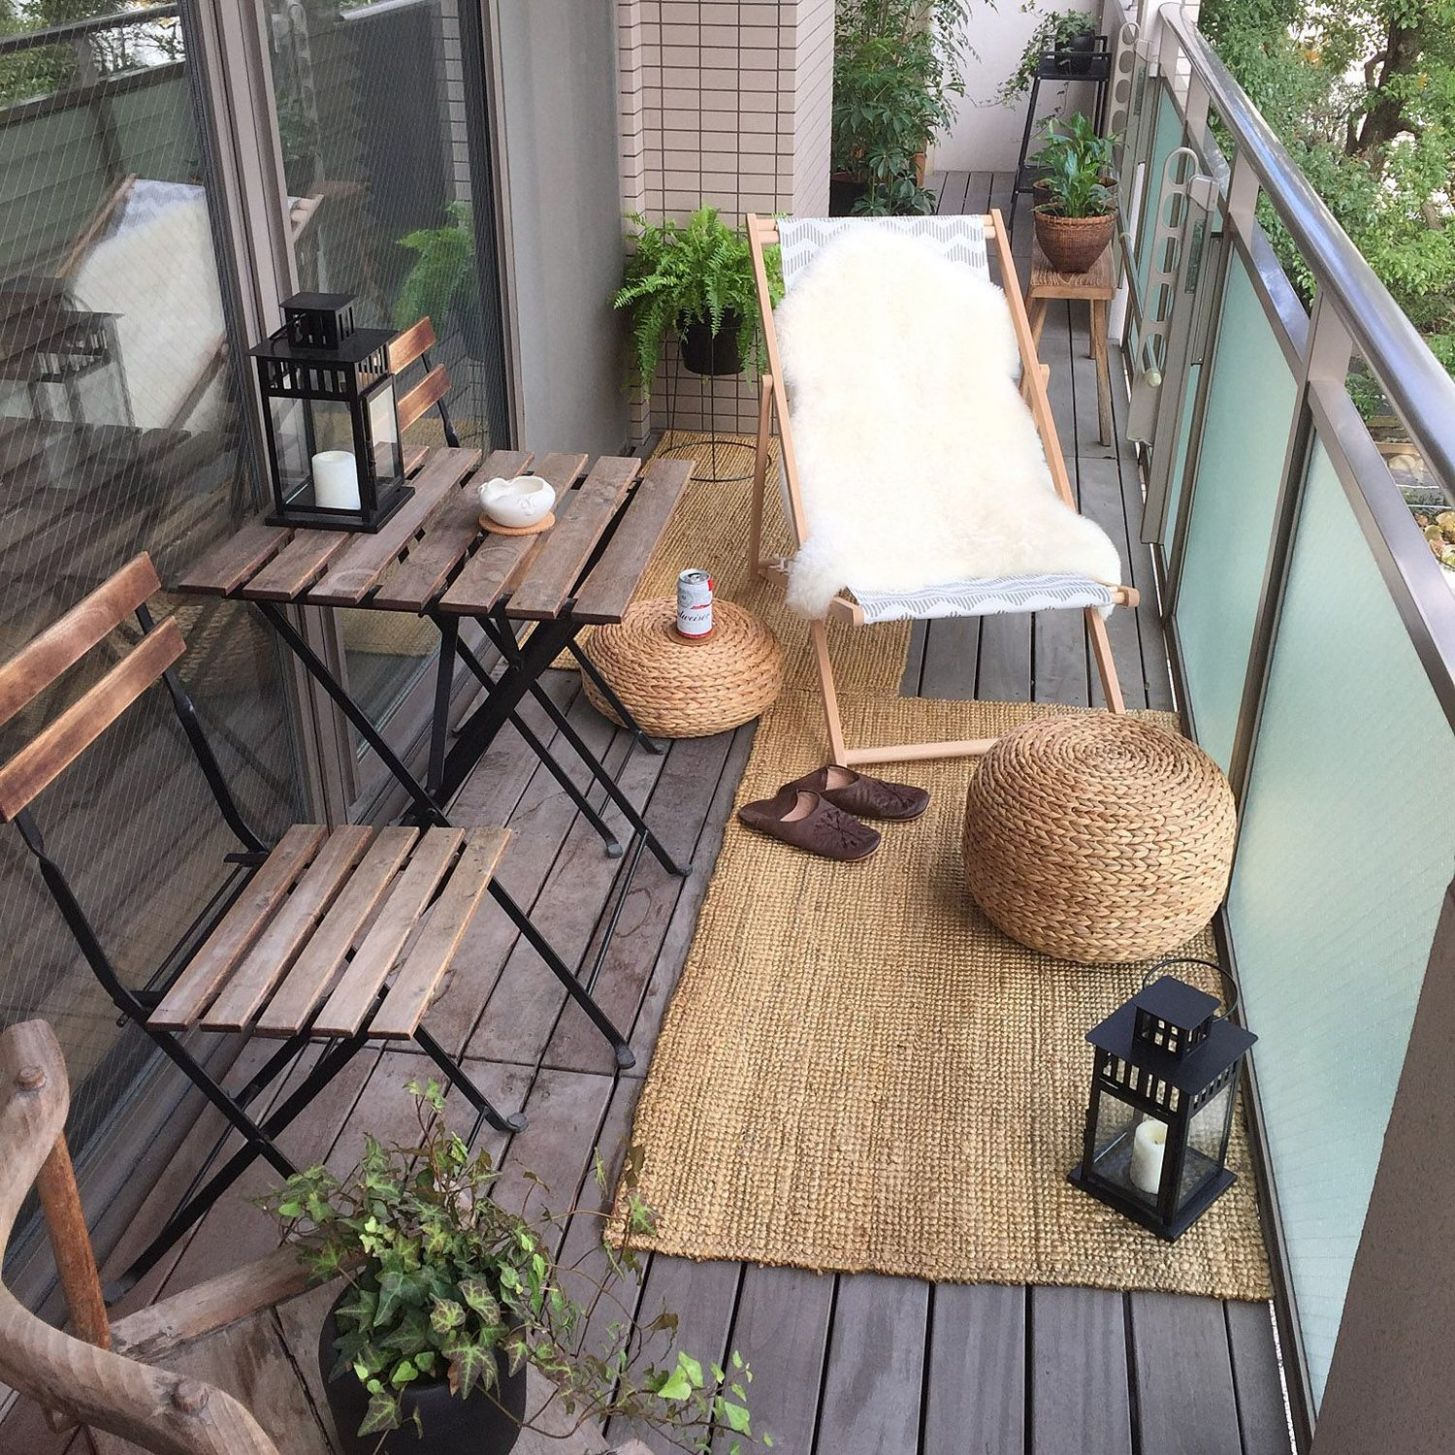 Inspiration for Small Apartment Balconies in the City | Small ...